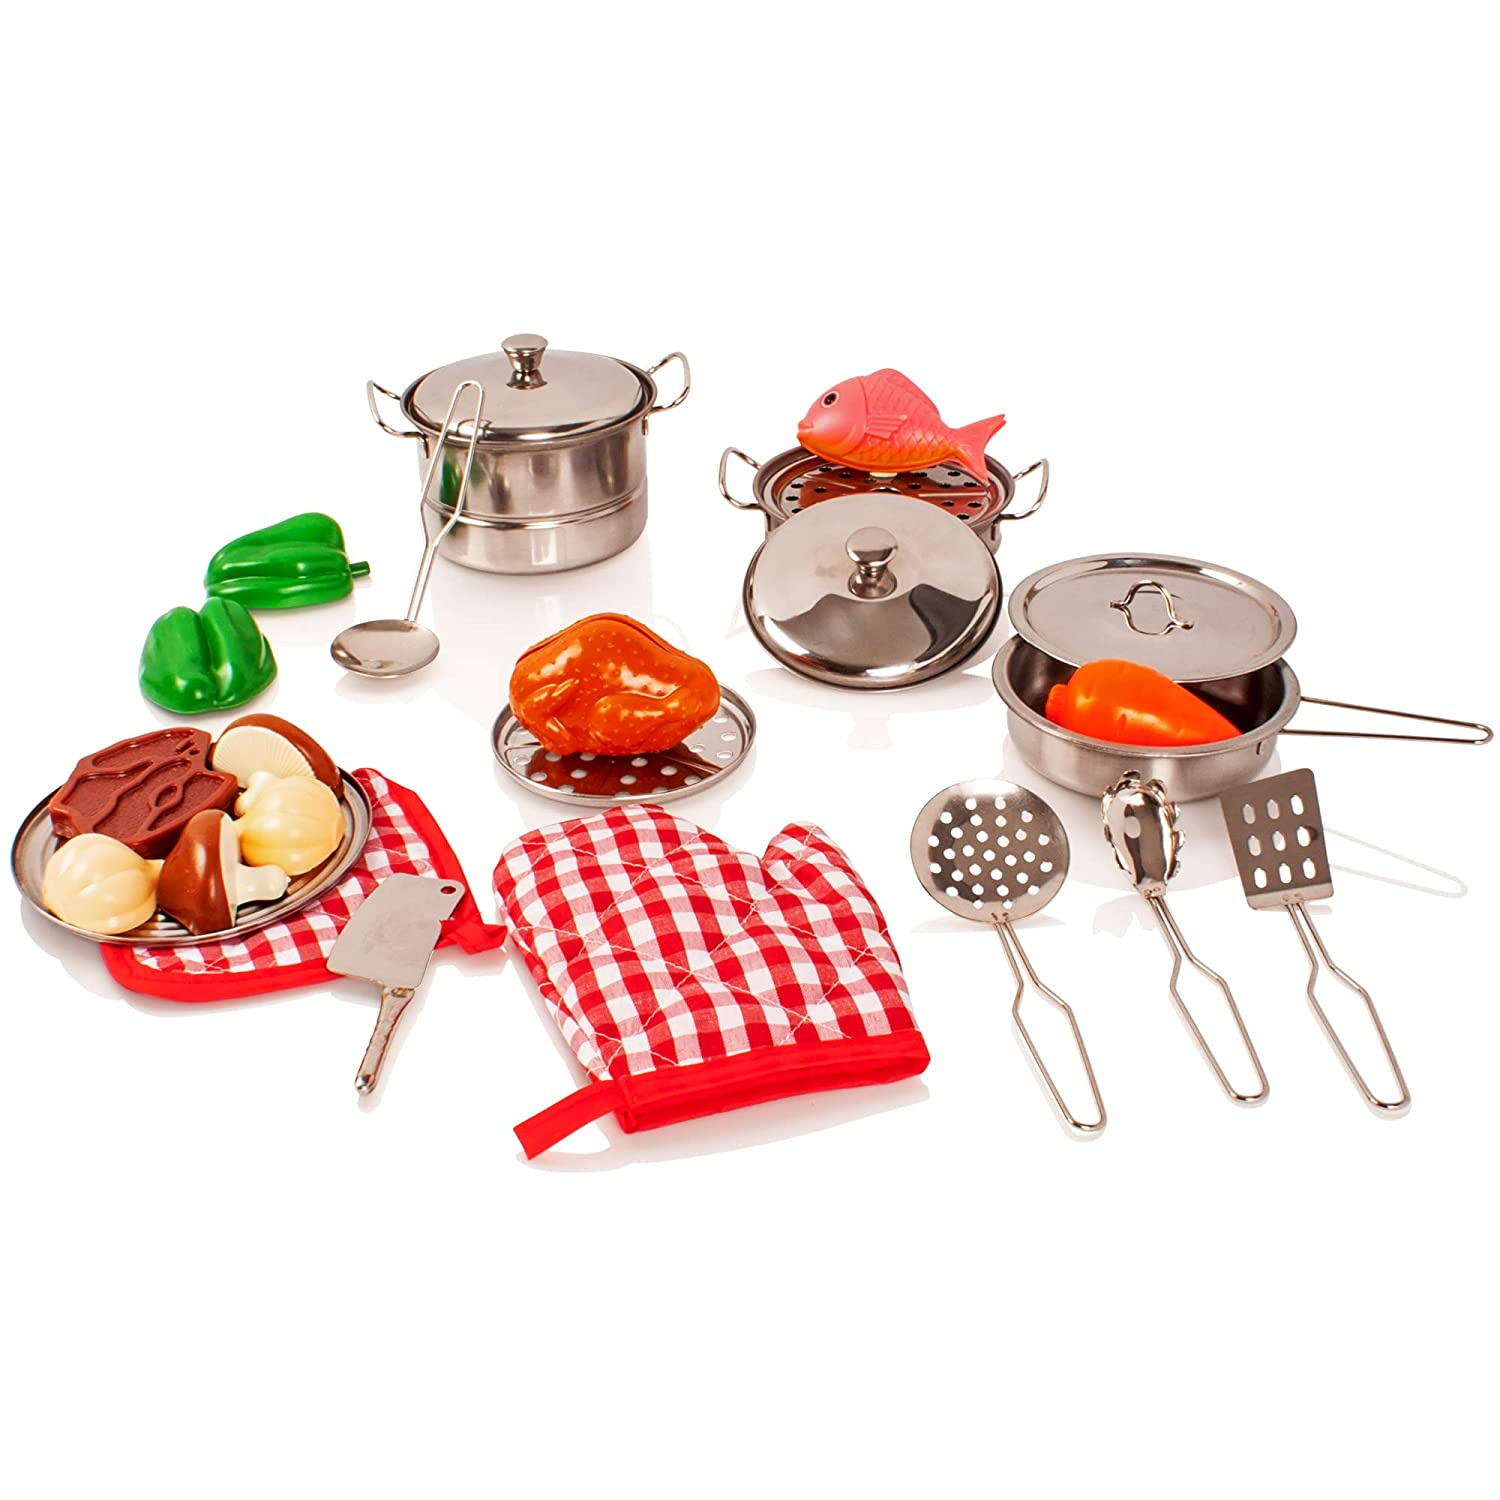 Milly & Ted 23 Piece Childrens Kitchen Pan, Utensil & Play Food Set - Kids Roleplay Pretend Toy 891111